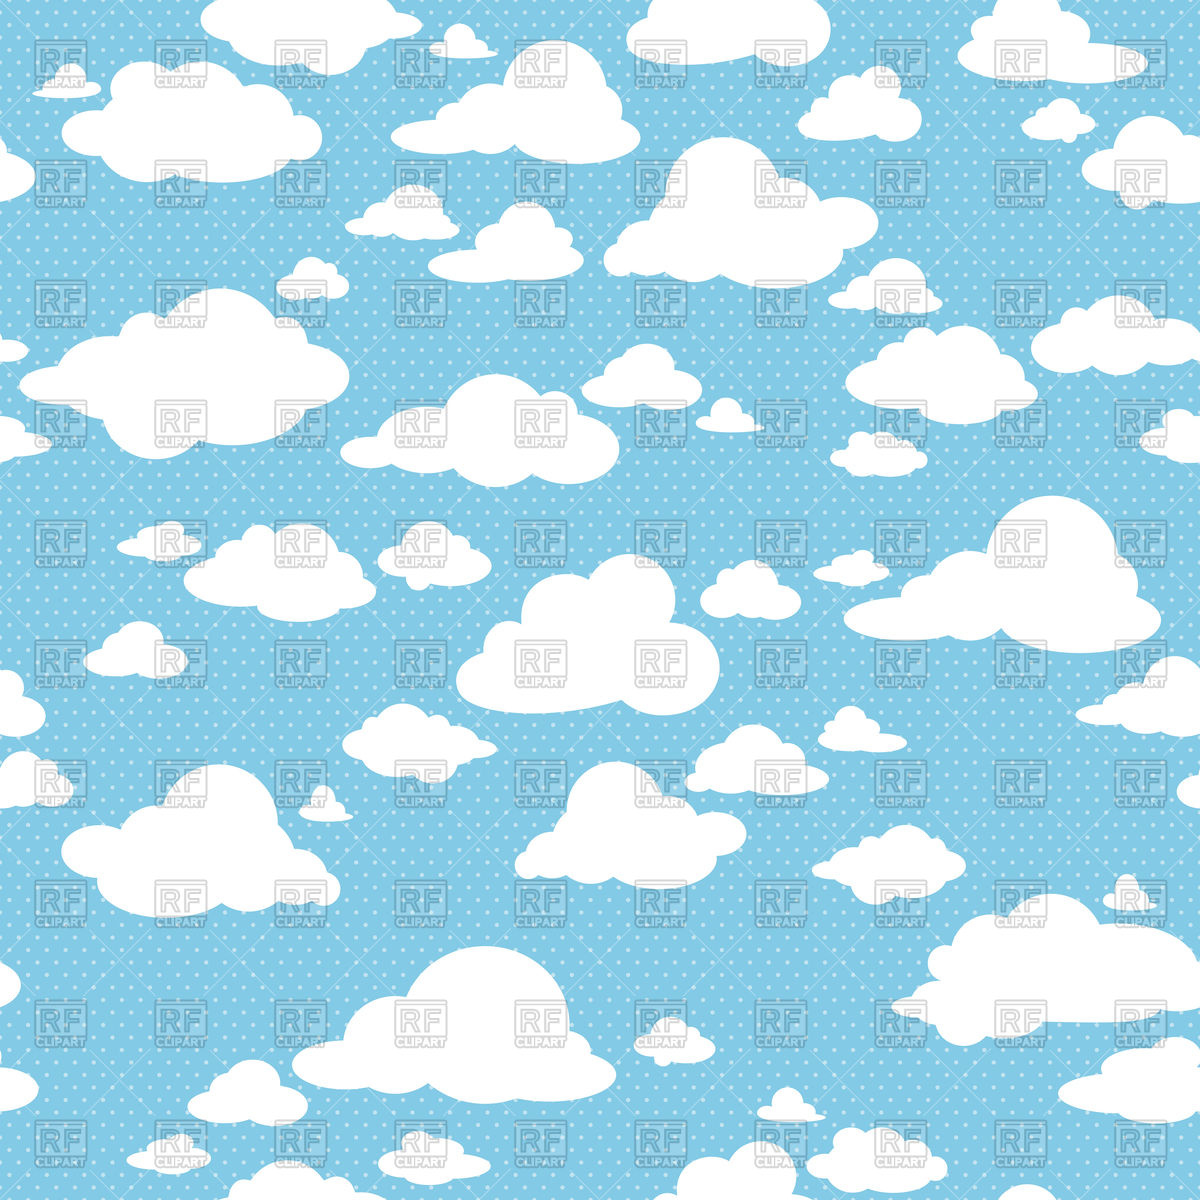 Seamless blue sky with clouds Vector Image #89955.